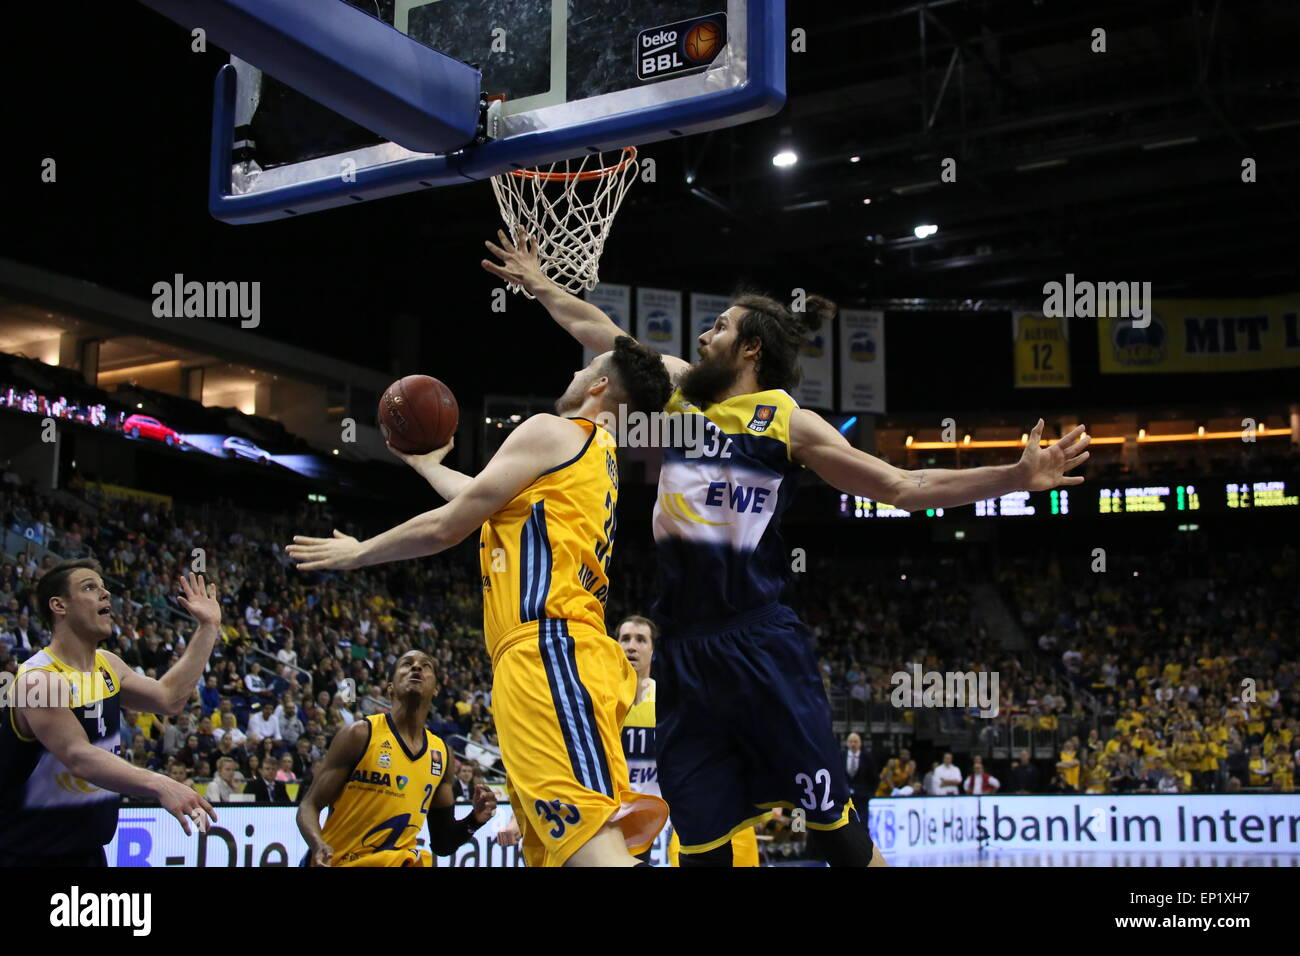 Berlin, Germany. 10th May, 2015. Alba Berlin defeated EWE Oldenburg in BBL playoff game with 95 to 90 in O2 World. - Stock Image